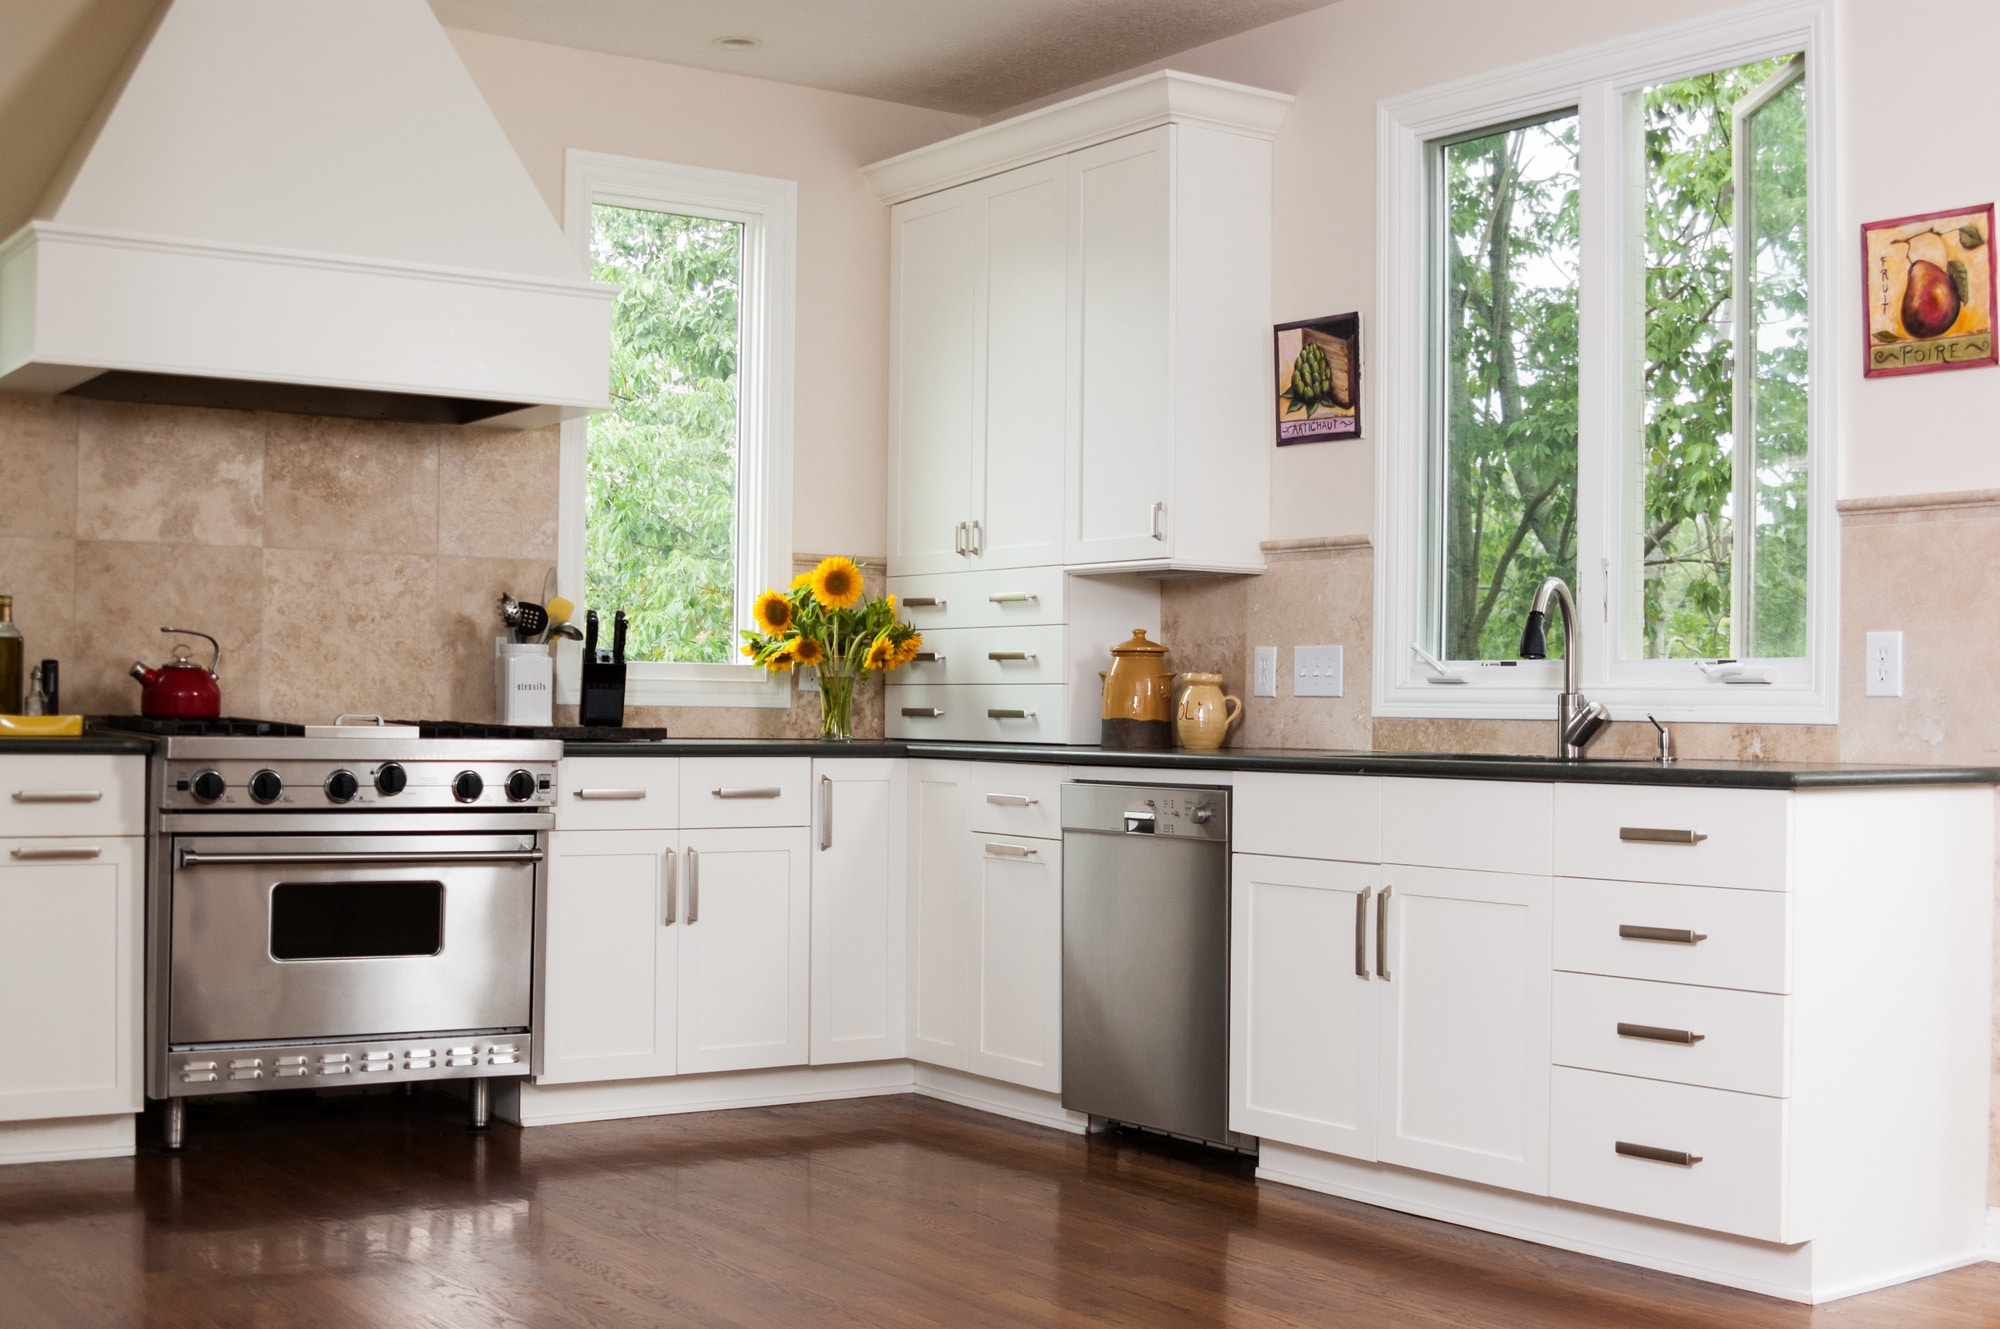 5 Unique Kitchen Cabinet Designs You Ll Fall In Love With